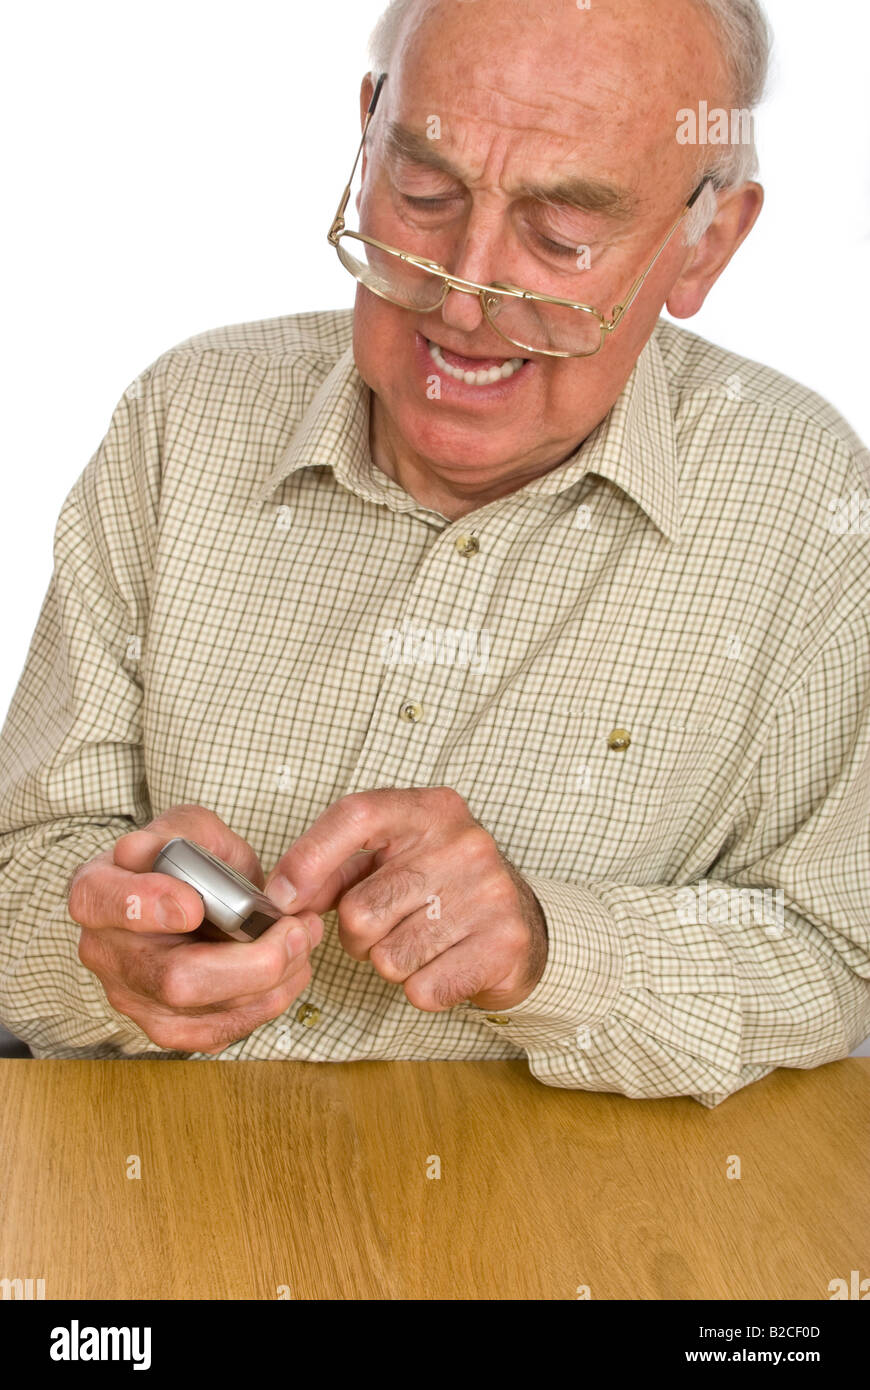 Vertical portrait of an elderly gentleman getting frustrated using the small buttons on a mobile phone - Stock Image